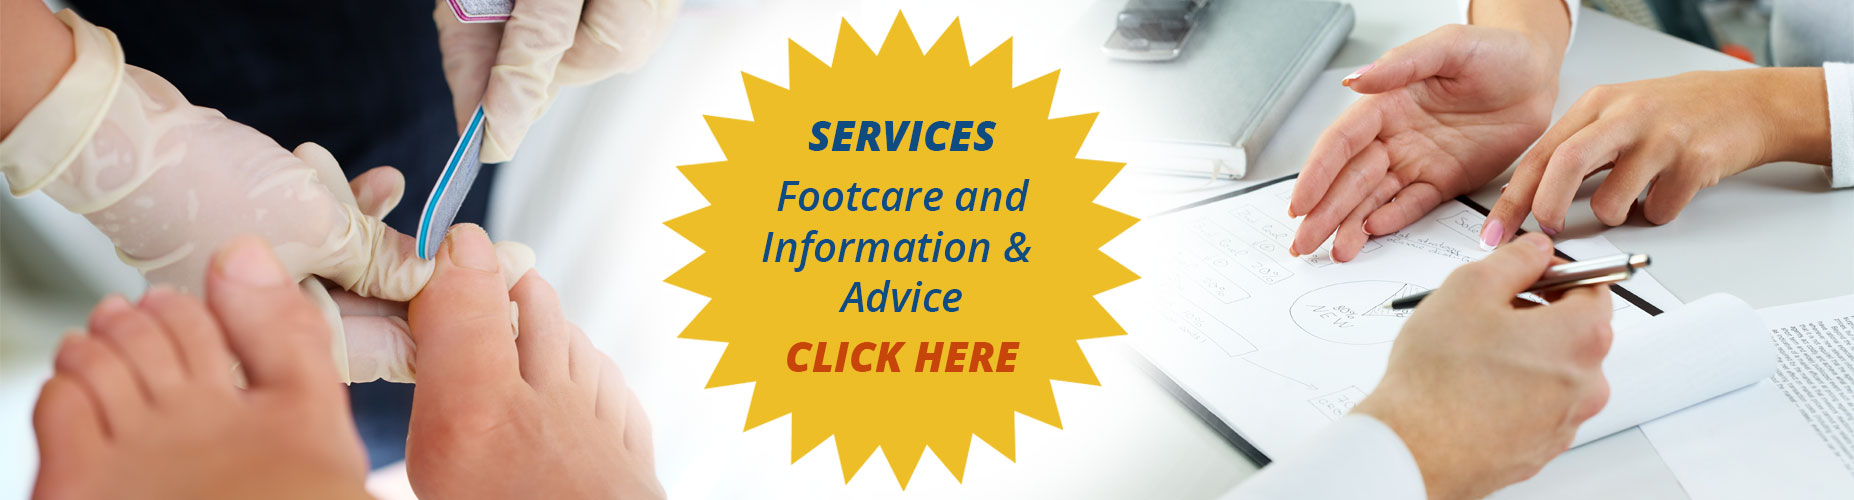 footcare-information-advice-day-centre-dover-services